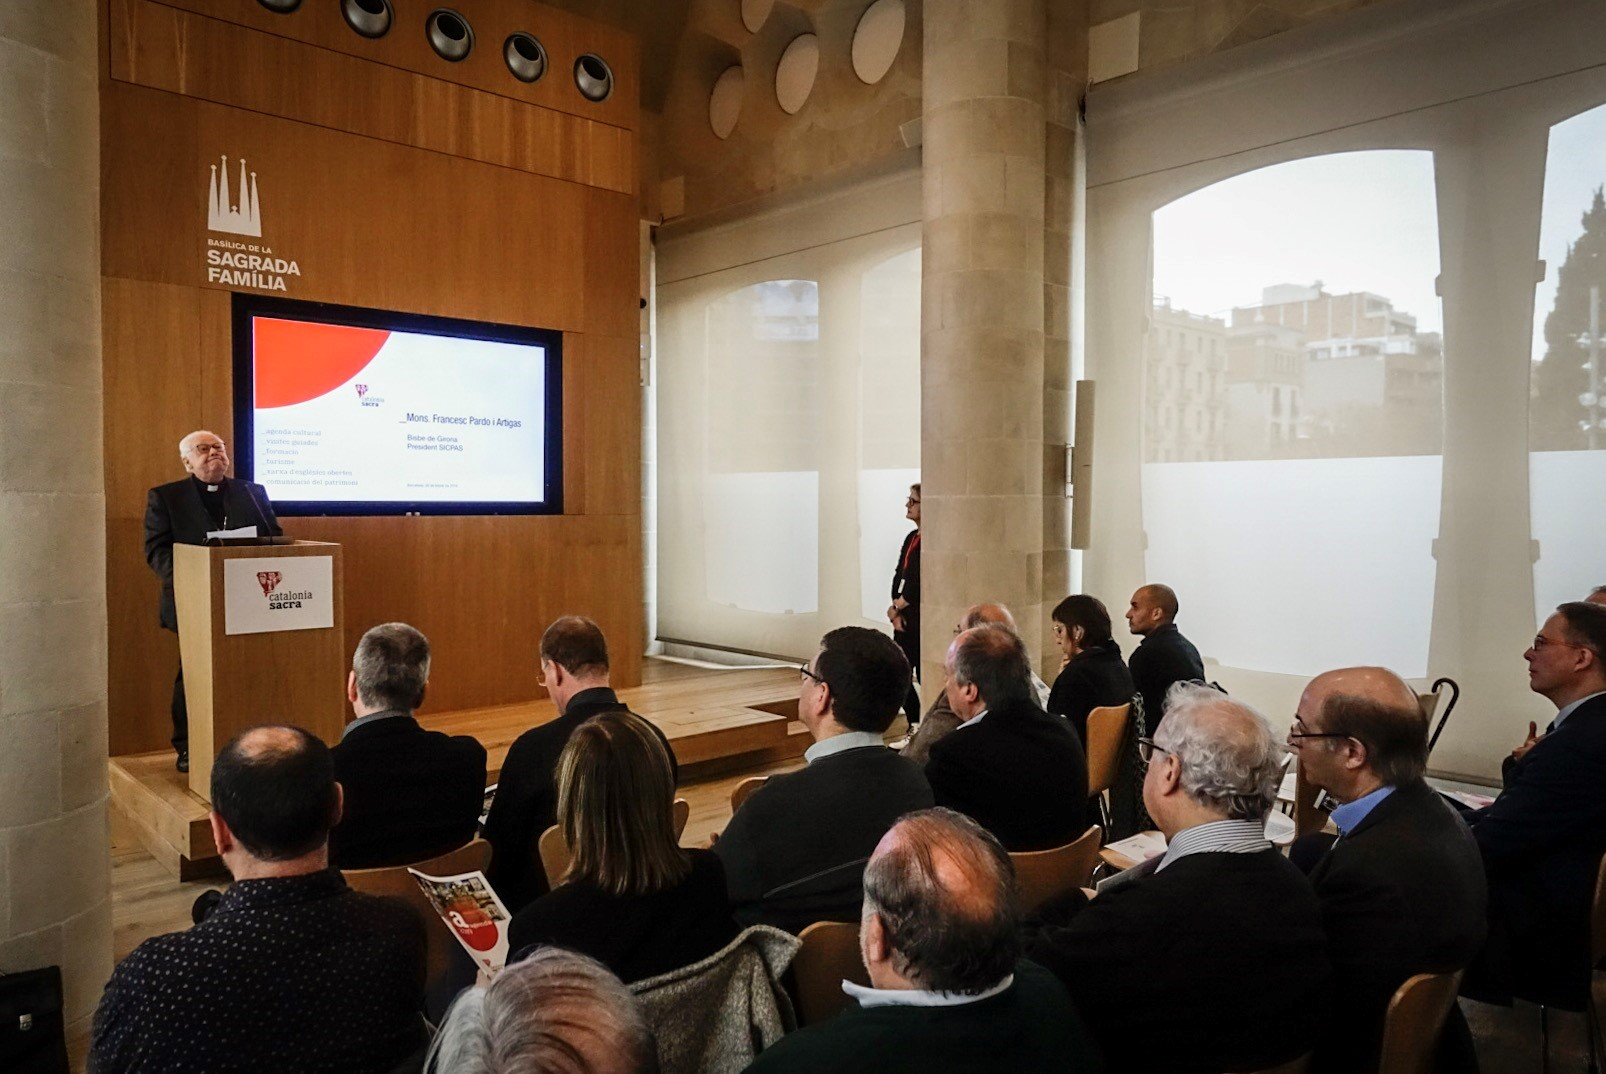 The Sagrada Família hosted the launch of the Catalonia Sacra agenda